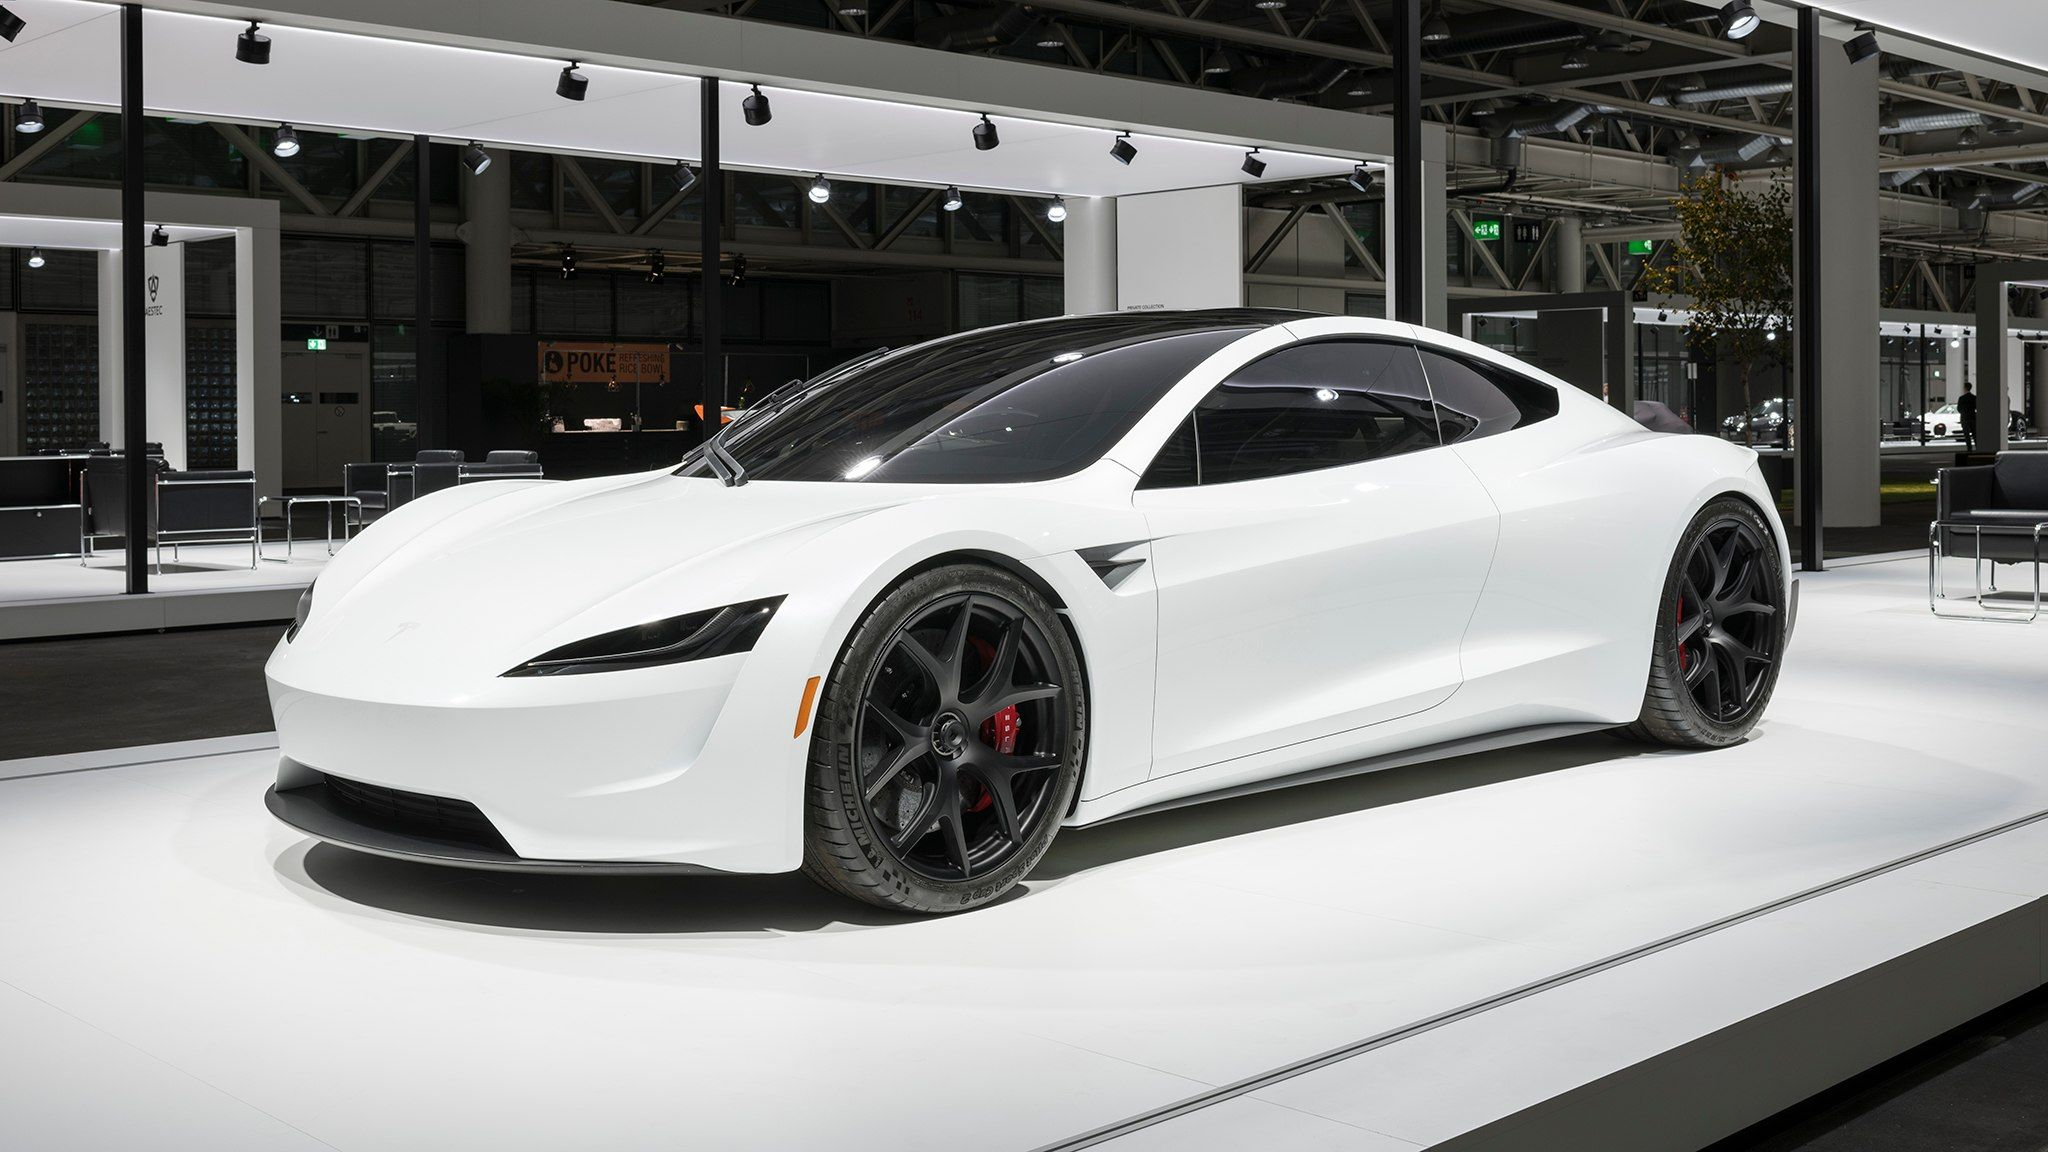 2020 Tesla Roadster Wears White After Labor Day For European Debut Tesla Roadster New Tesla Roadster Sports Cars Luxury